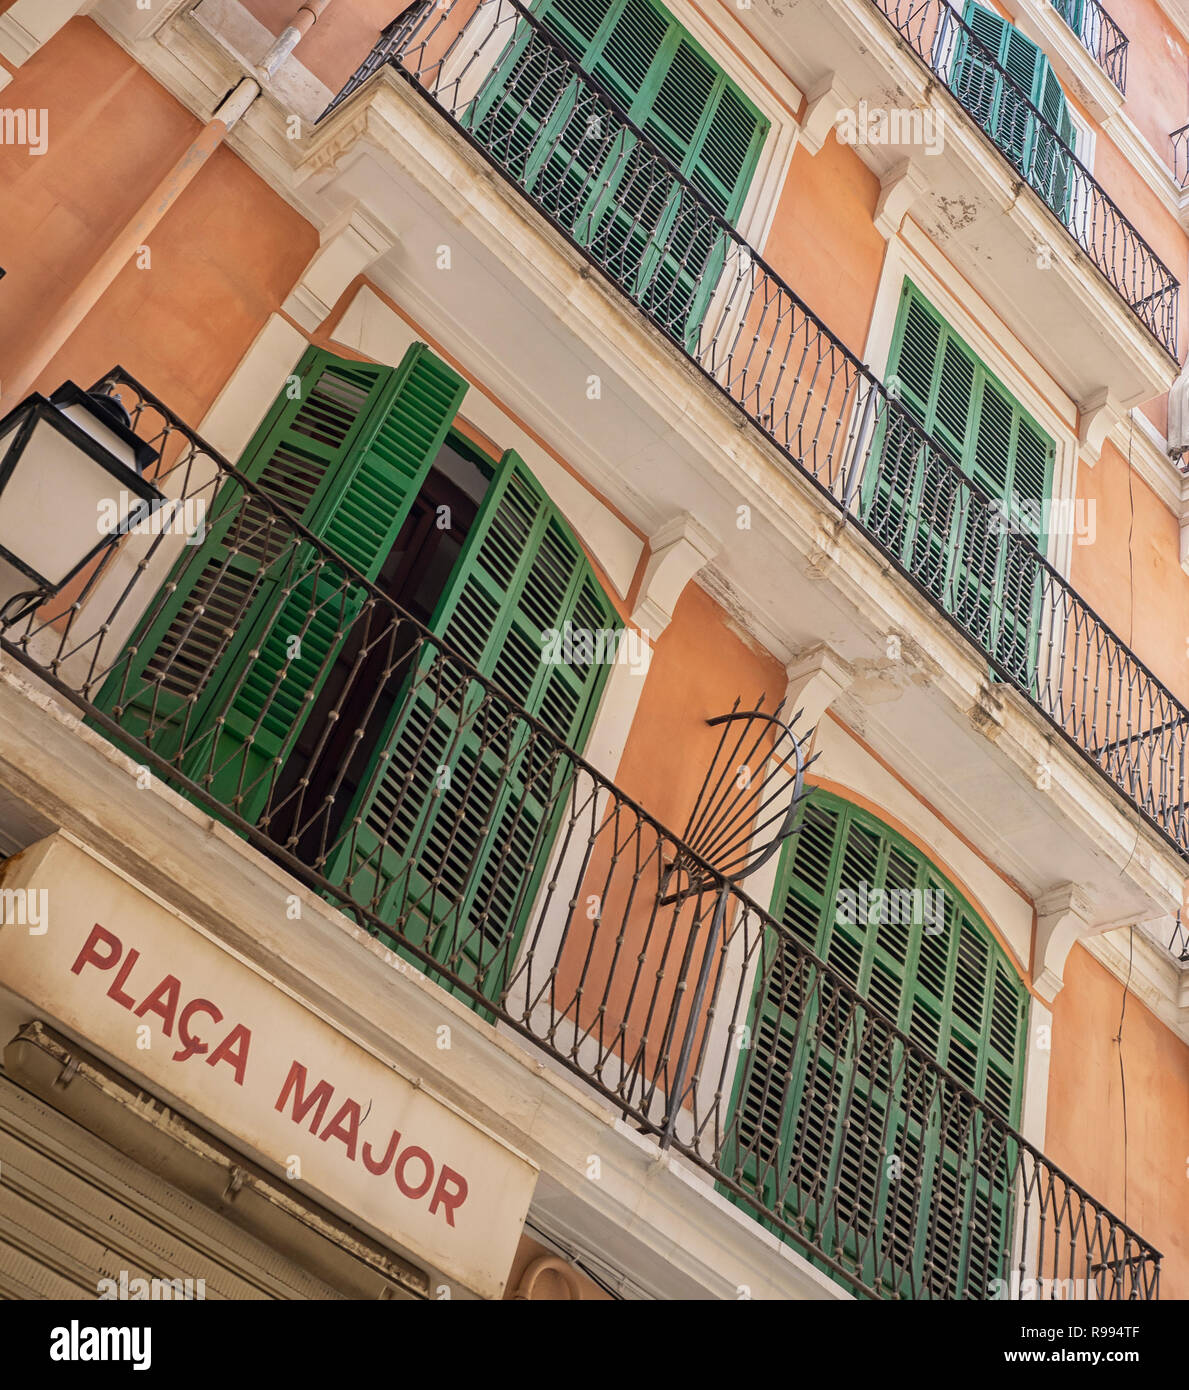 PALMA de MALLORCA:  Apartment building with shuttered windows in Placa Major in the Old Town - Stock Image